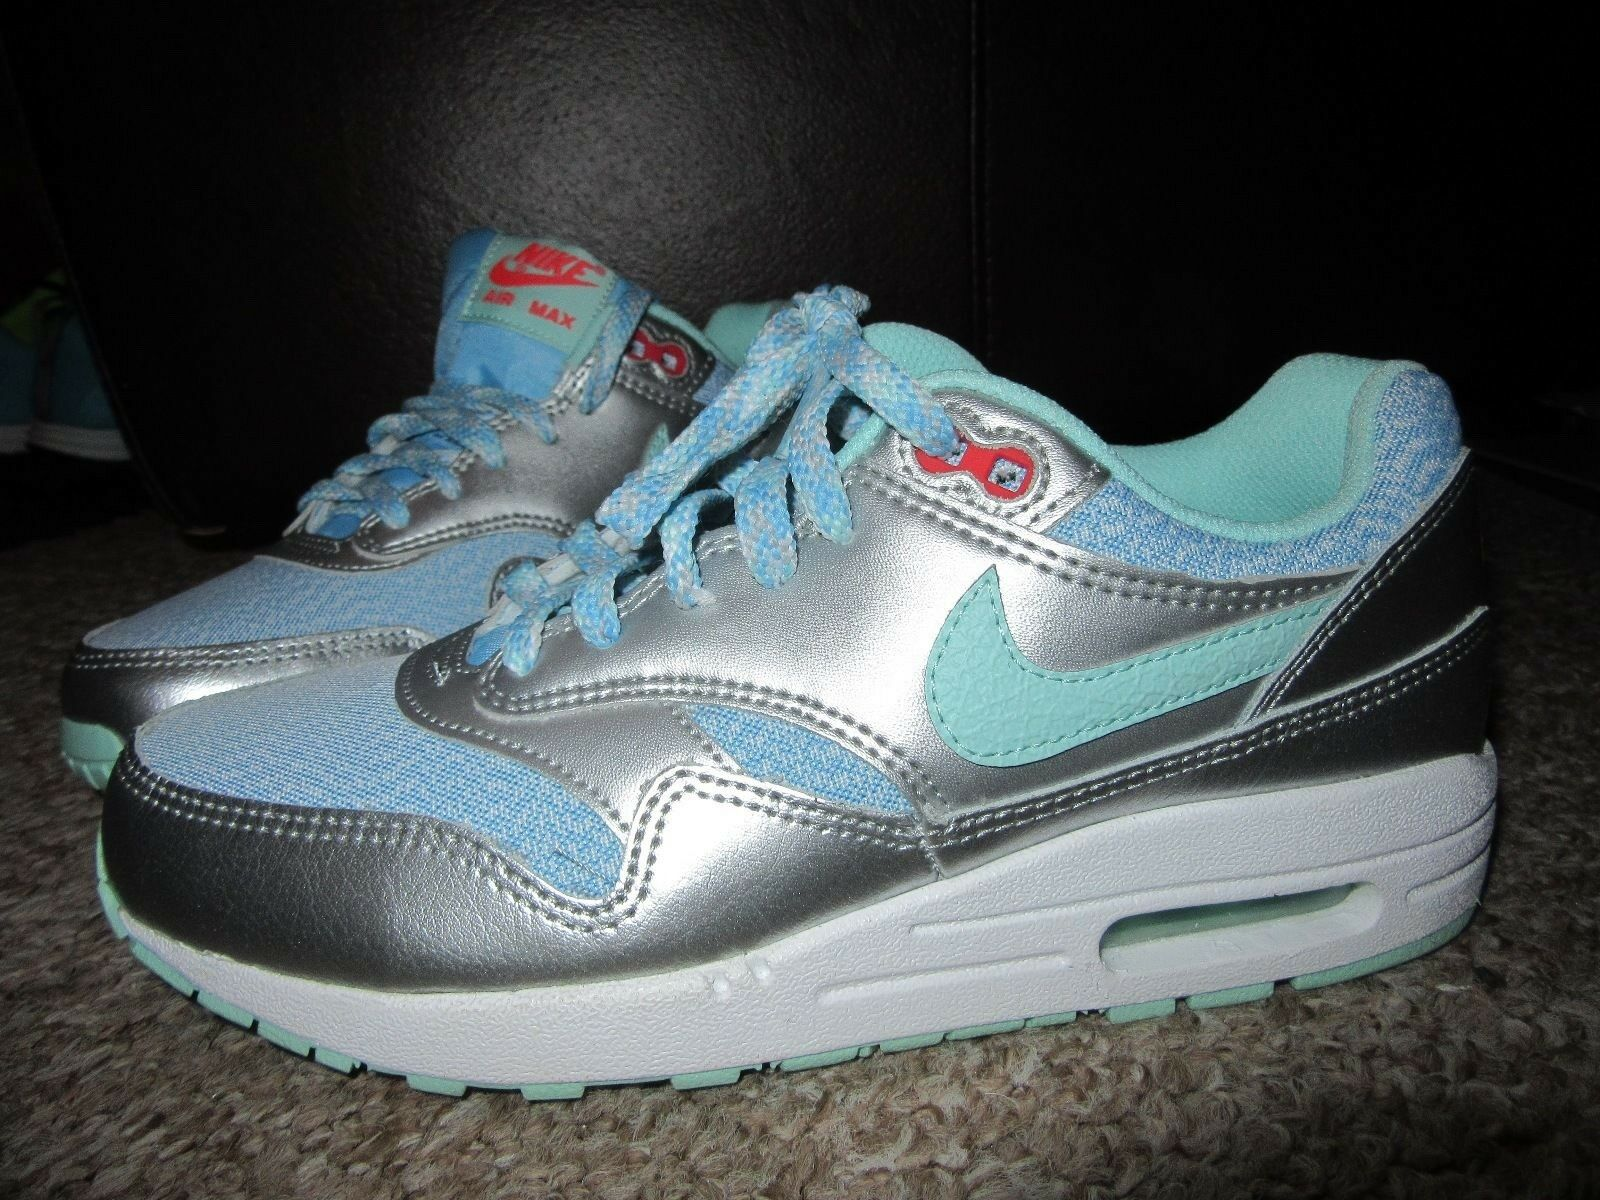 NEW Womens NIKE Air MAX Trainers UK 4.5 Metallic Metallic Metallic Silver Mint Green EU 37.5 shoes a8953a